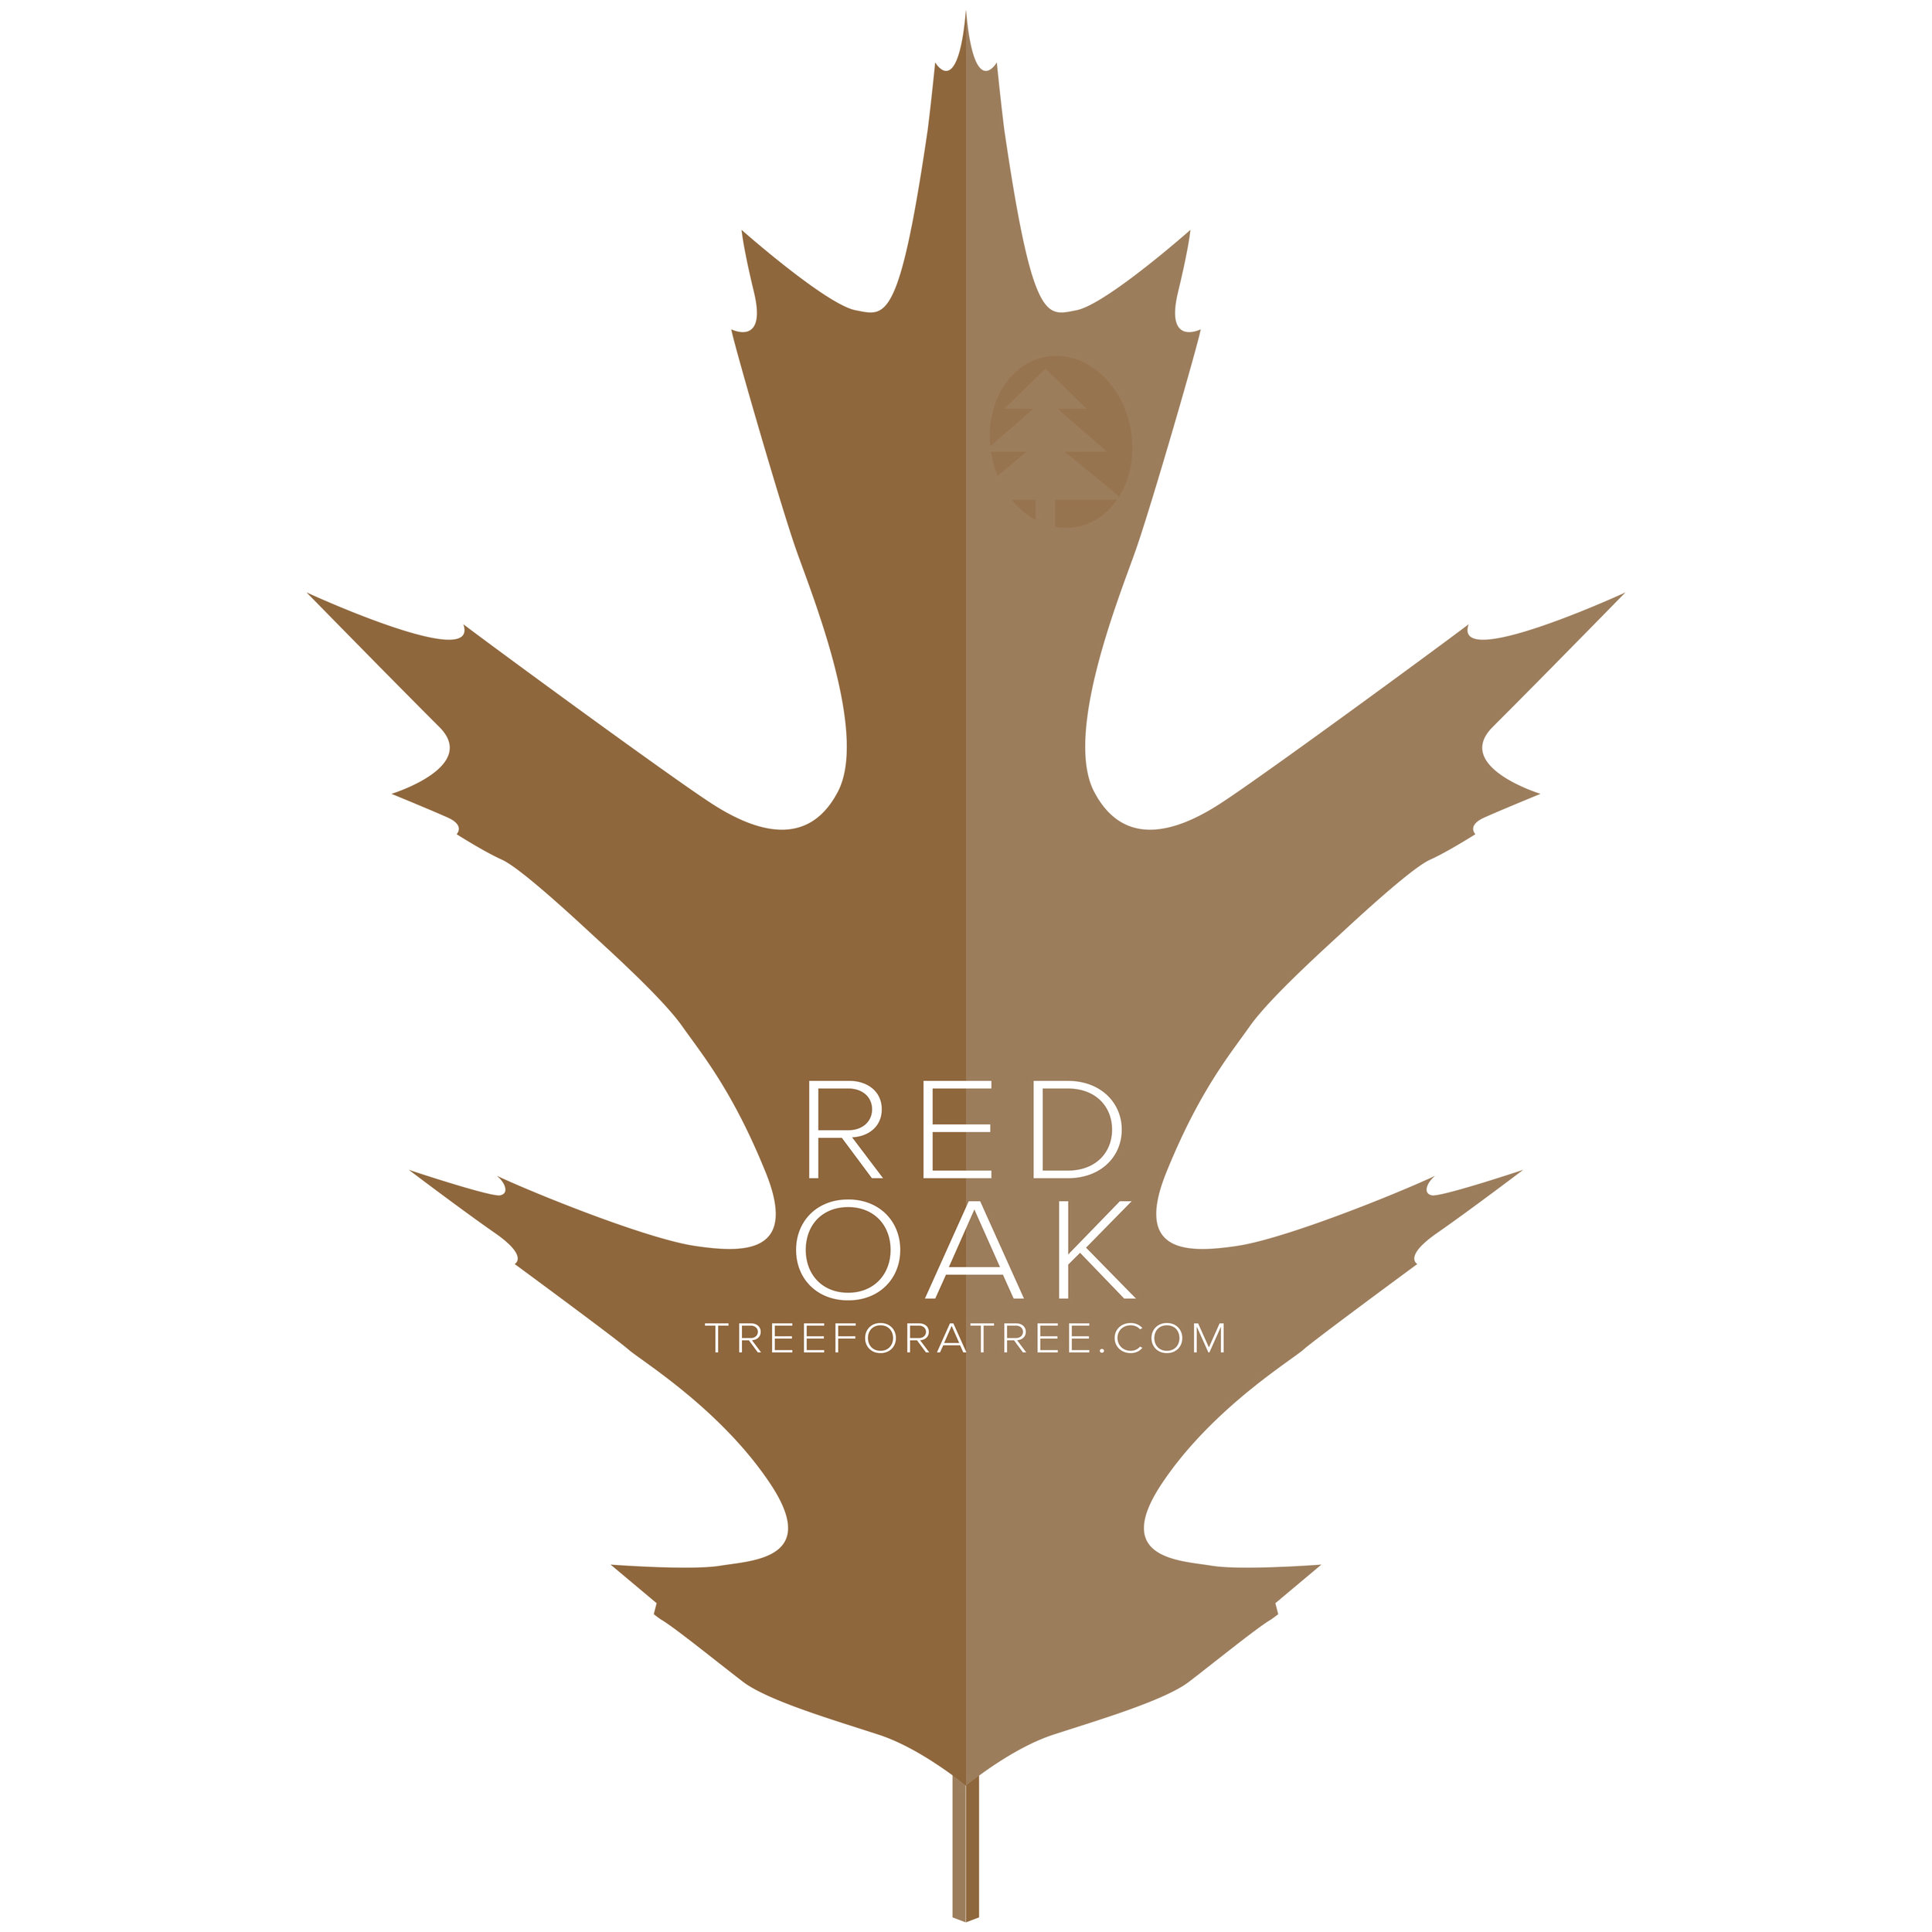 Red Oak - Latin Name: Acer rubrumGrowth Rate: Very FastMature Height: ≈60 ftMature Spread: ≈70 ftState Champ: Gallia (70' high x 59' spread)